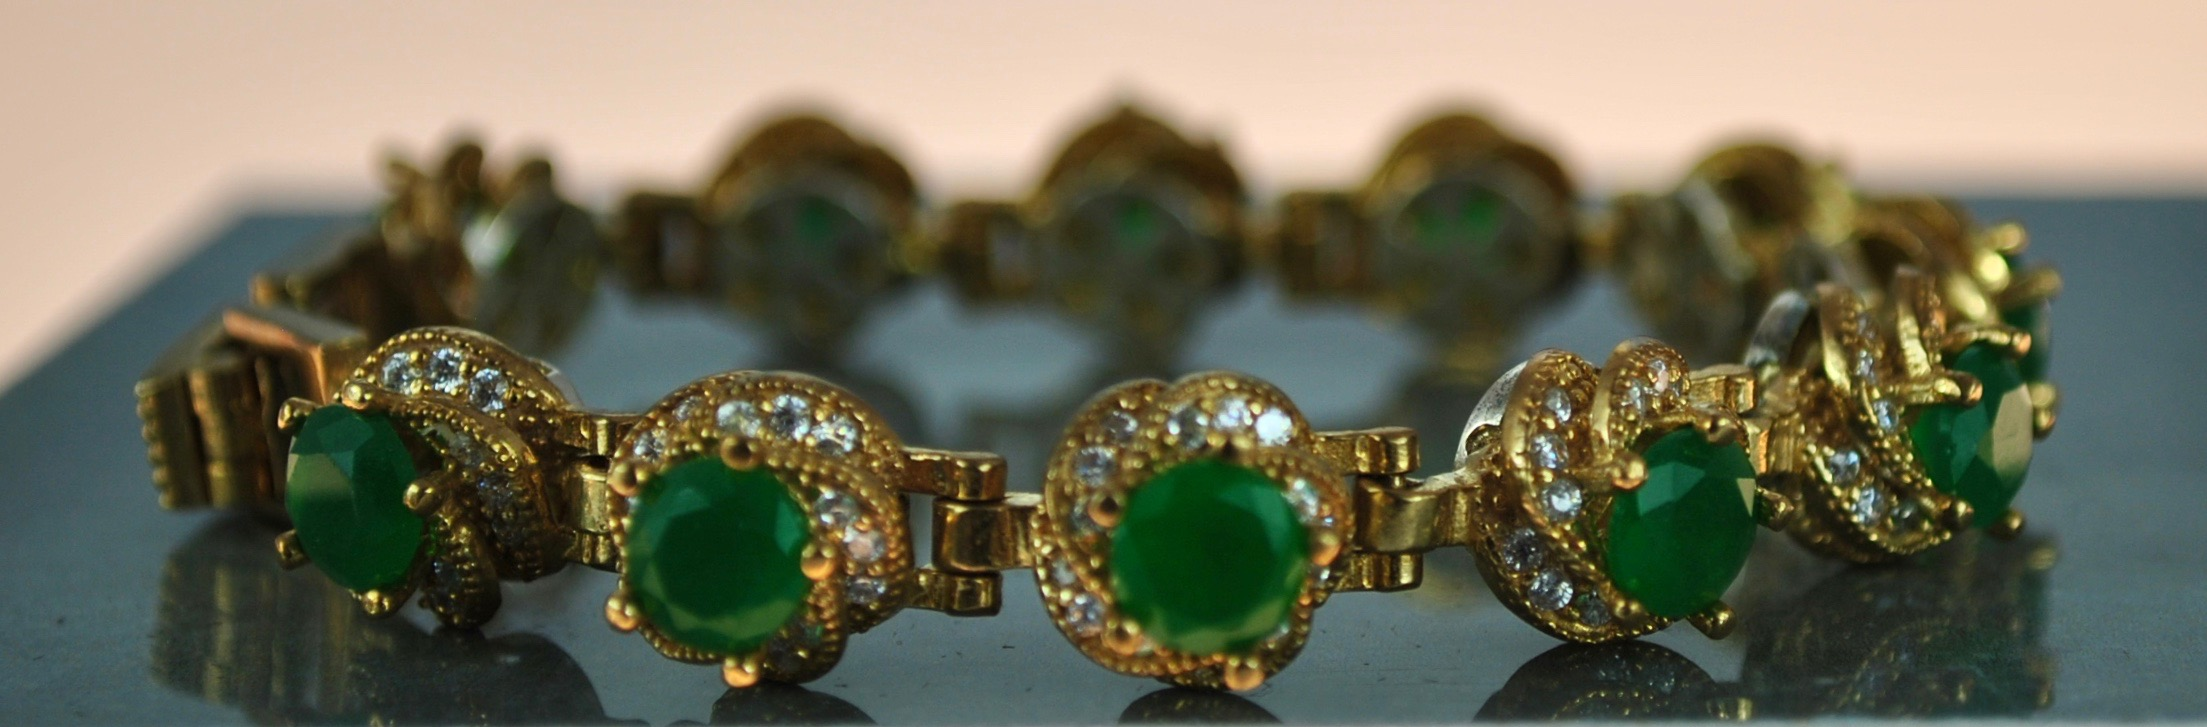 925 Silver 22k Gold vermeil bracelet in Green